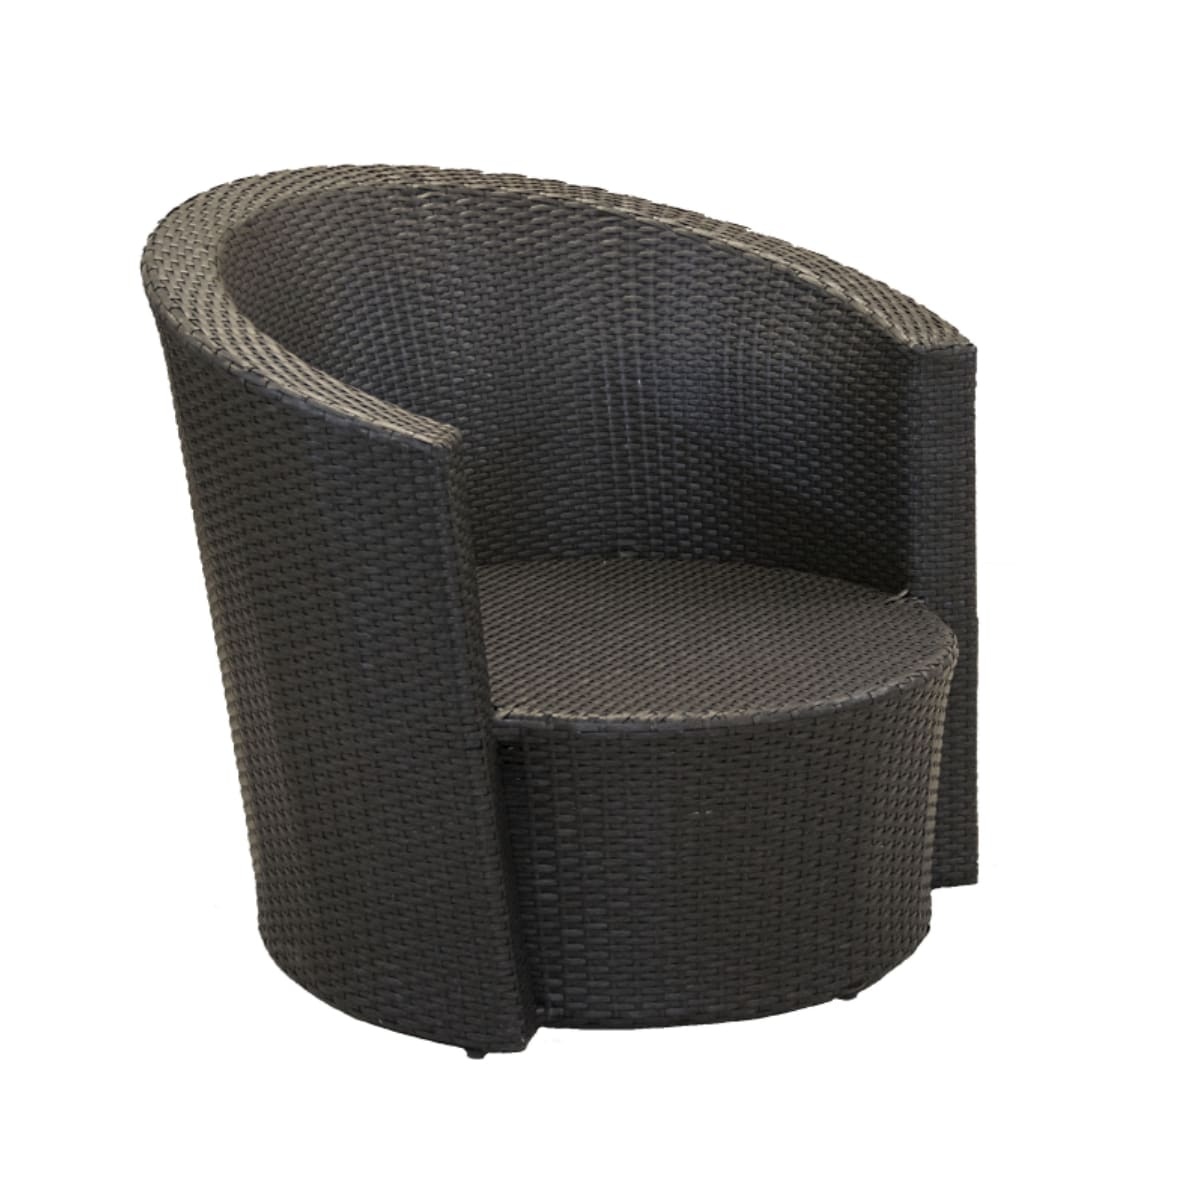 Expand homefurniture collectionsla palma collectionla palma outdoor patio furniture club chair